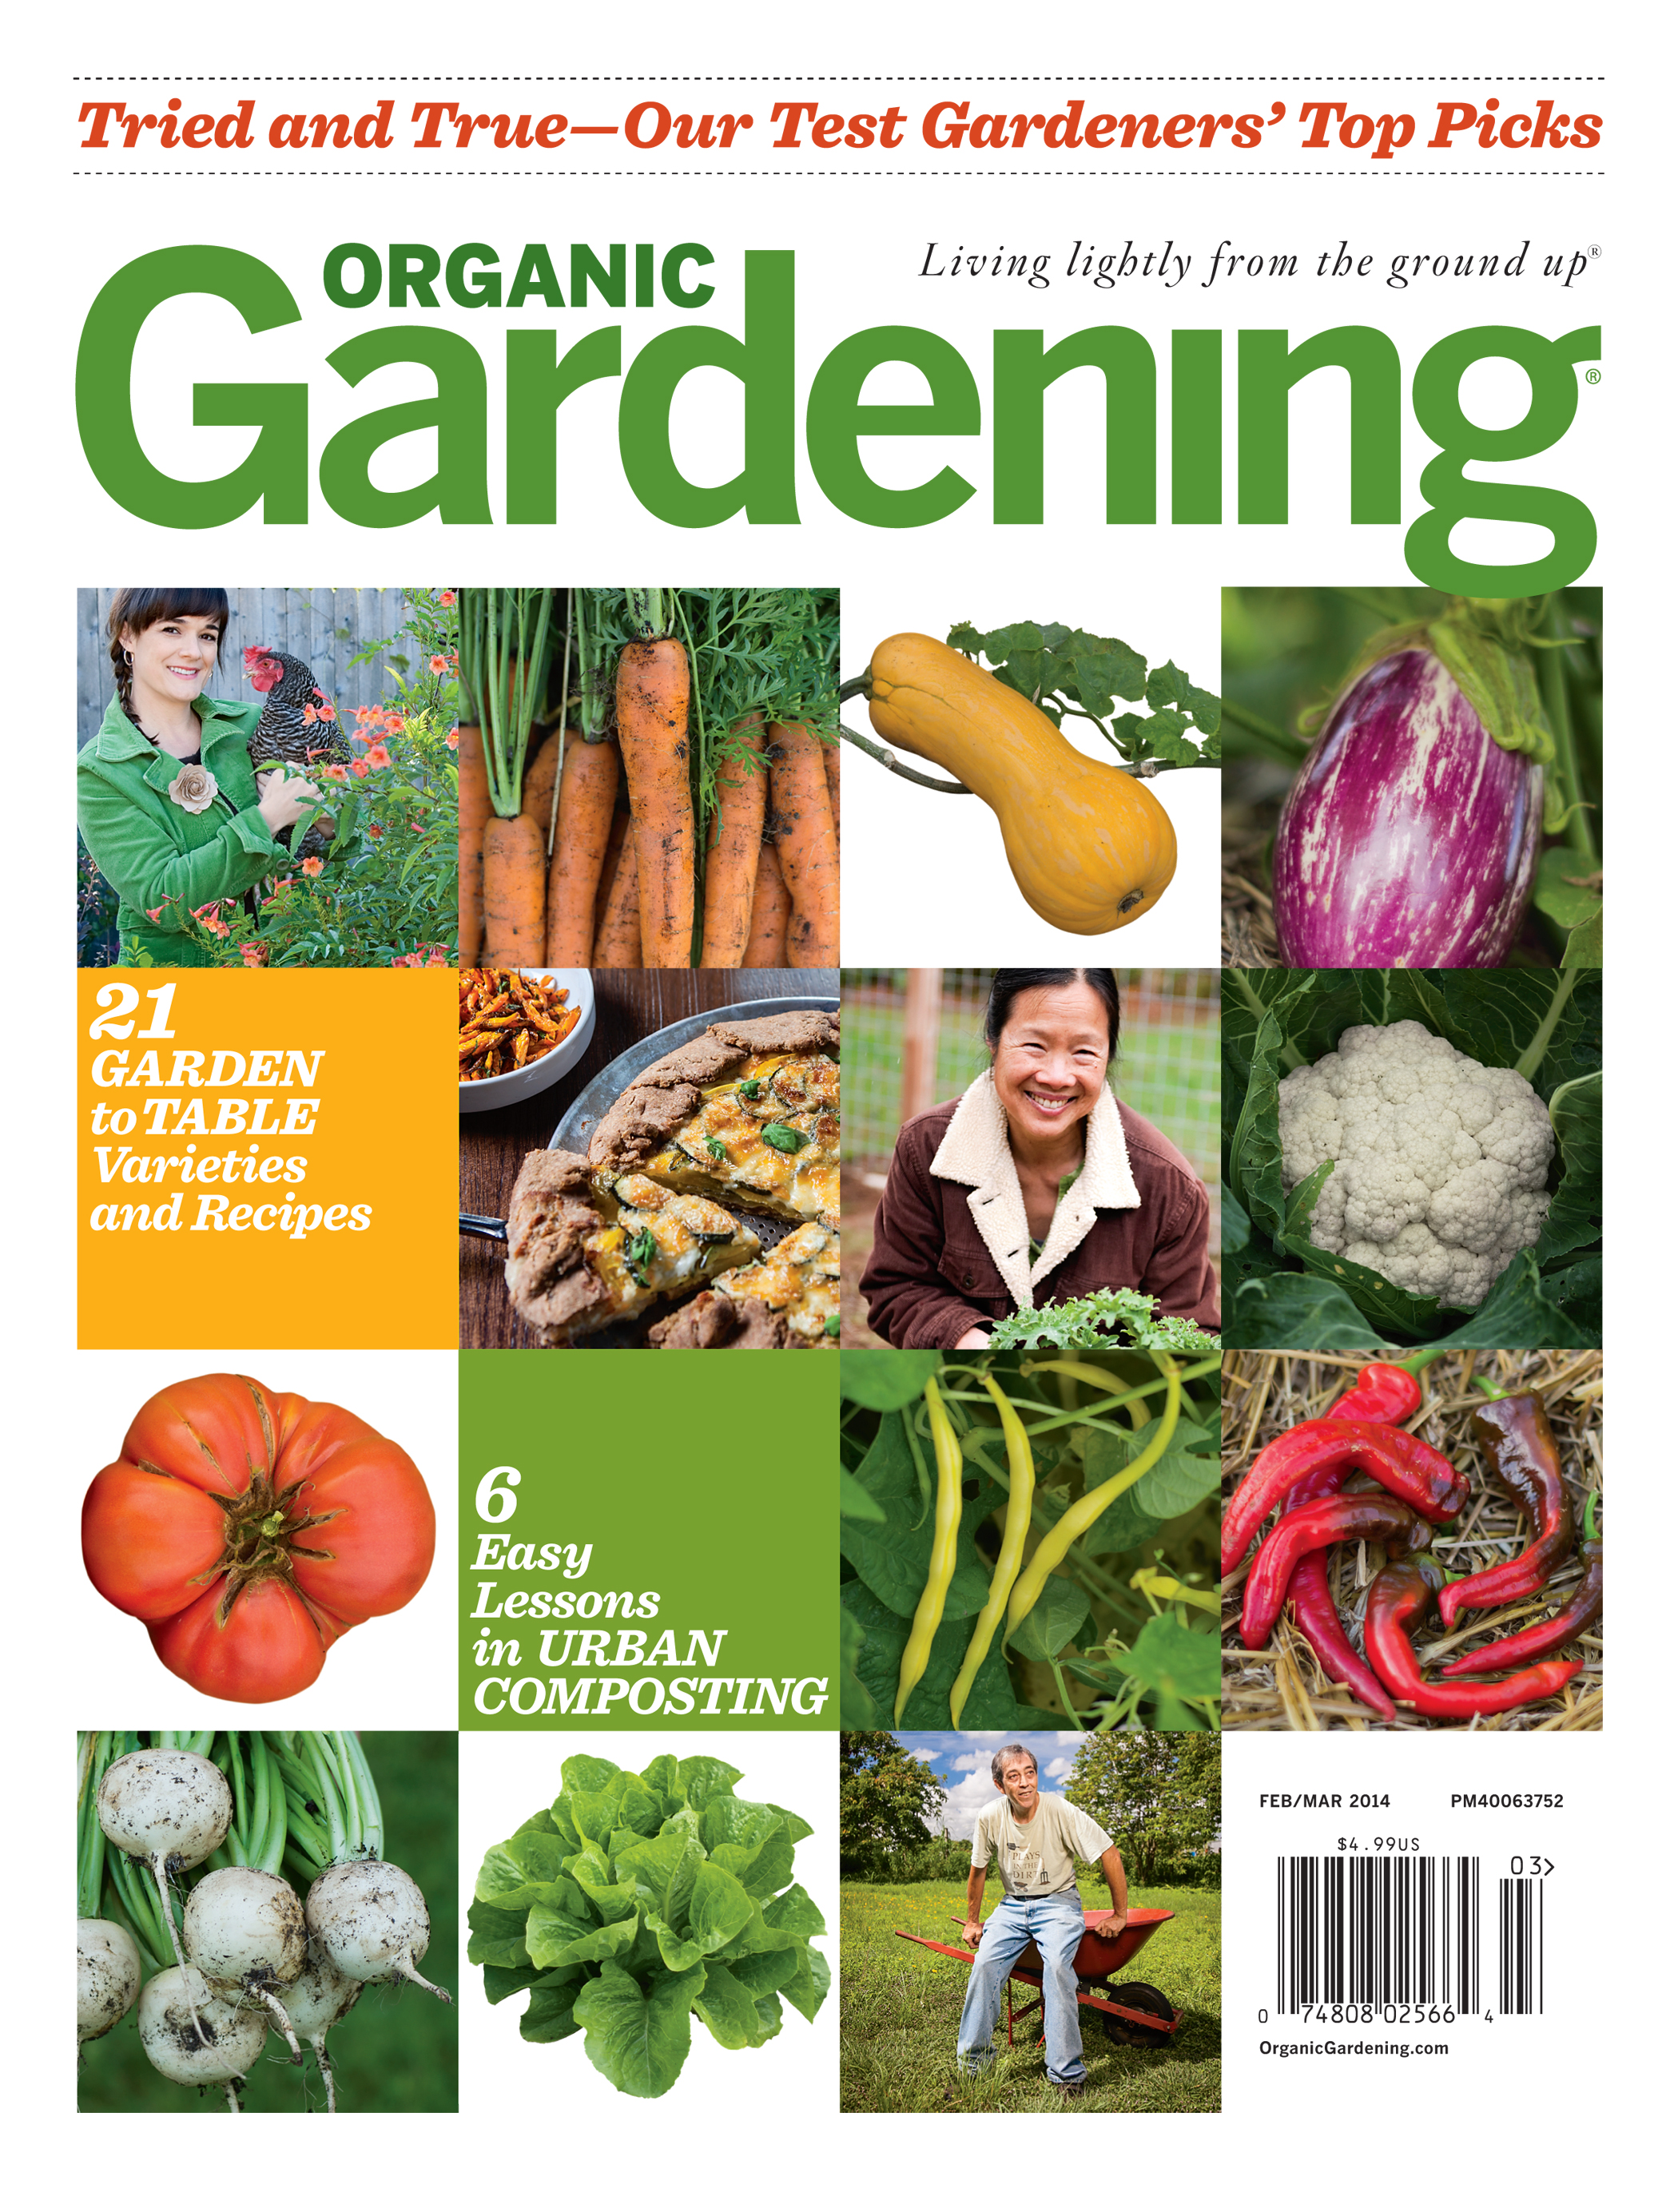 Organic Gardening with Andres Mejides in Homestead FL